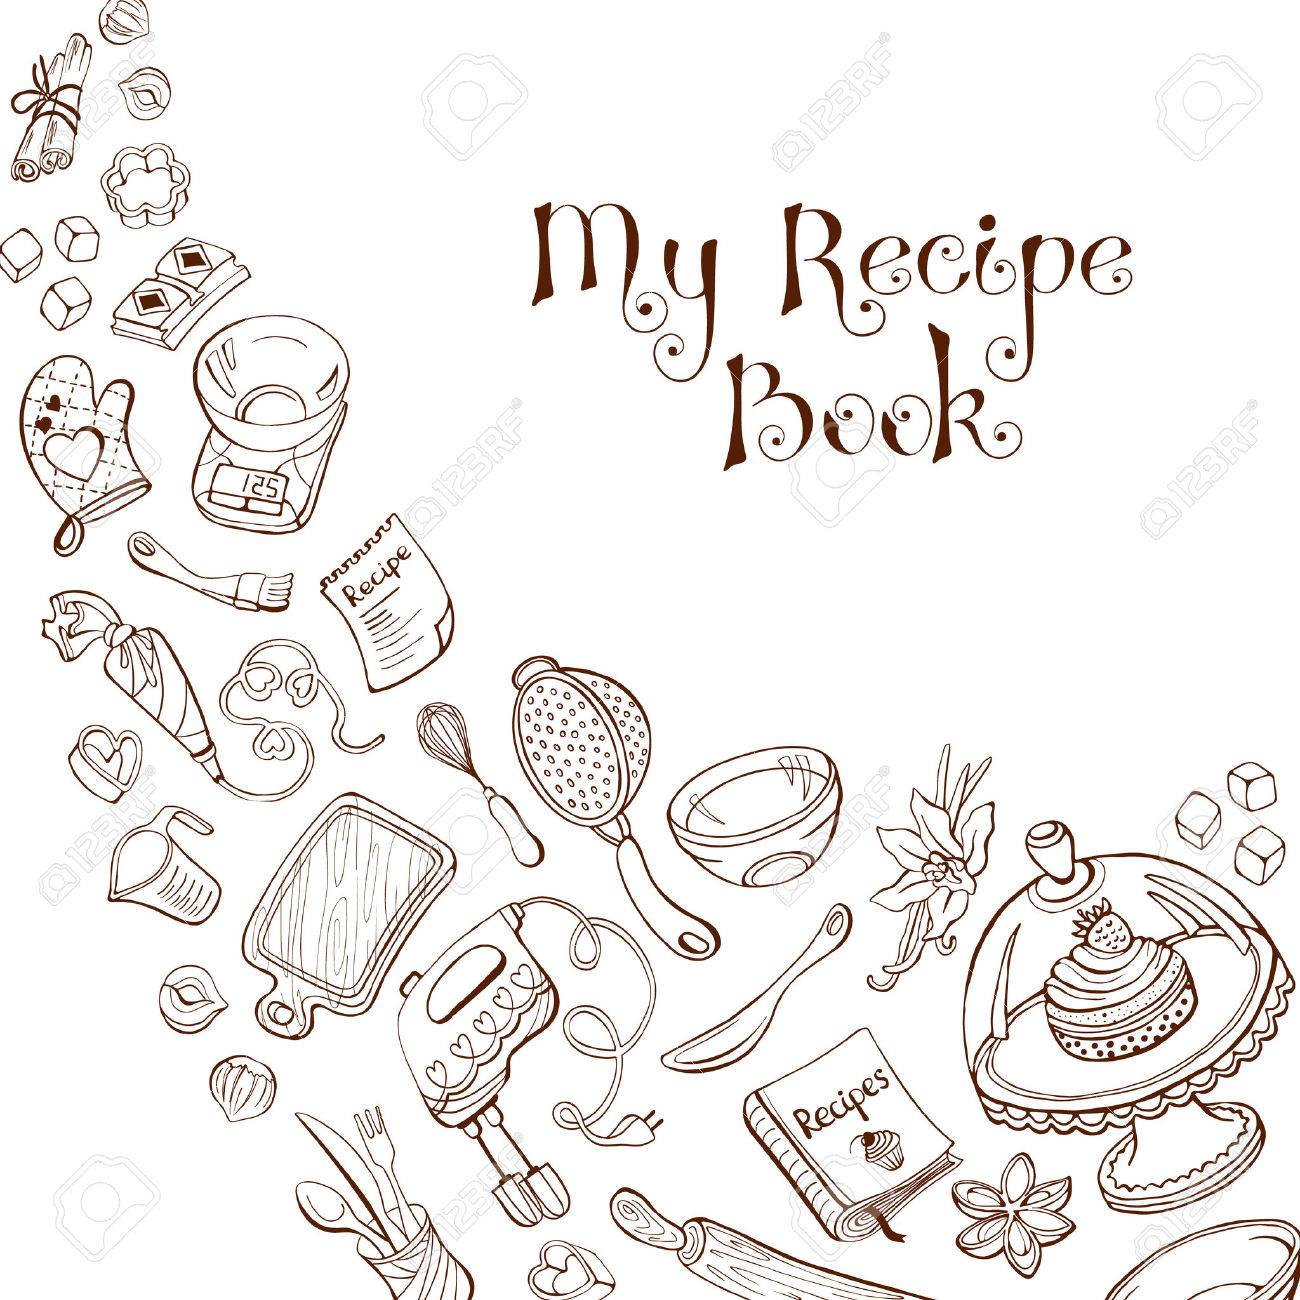 My Recipe Book Cafe And Restaurant Menu Design Concept